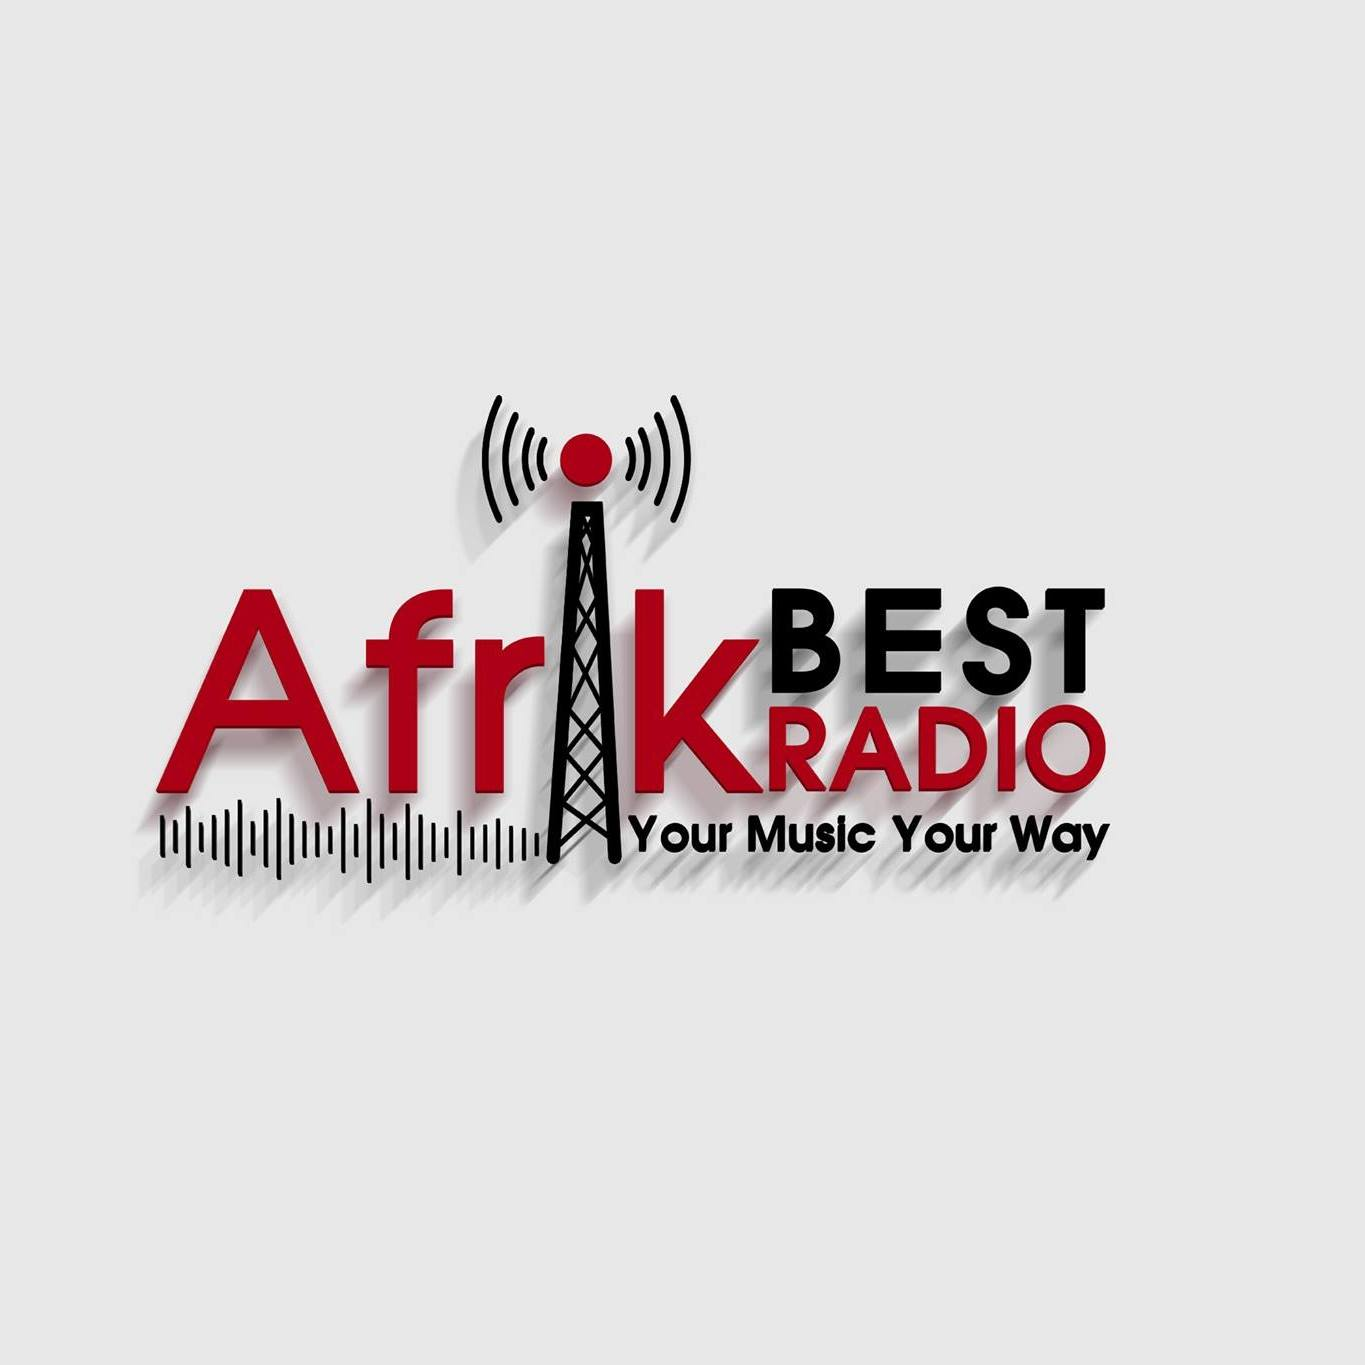 Radio Advertising To Unlimited Listenes Worldwide For 30 Days